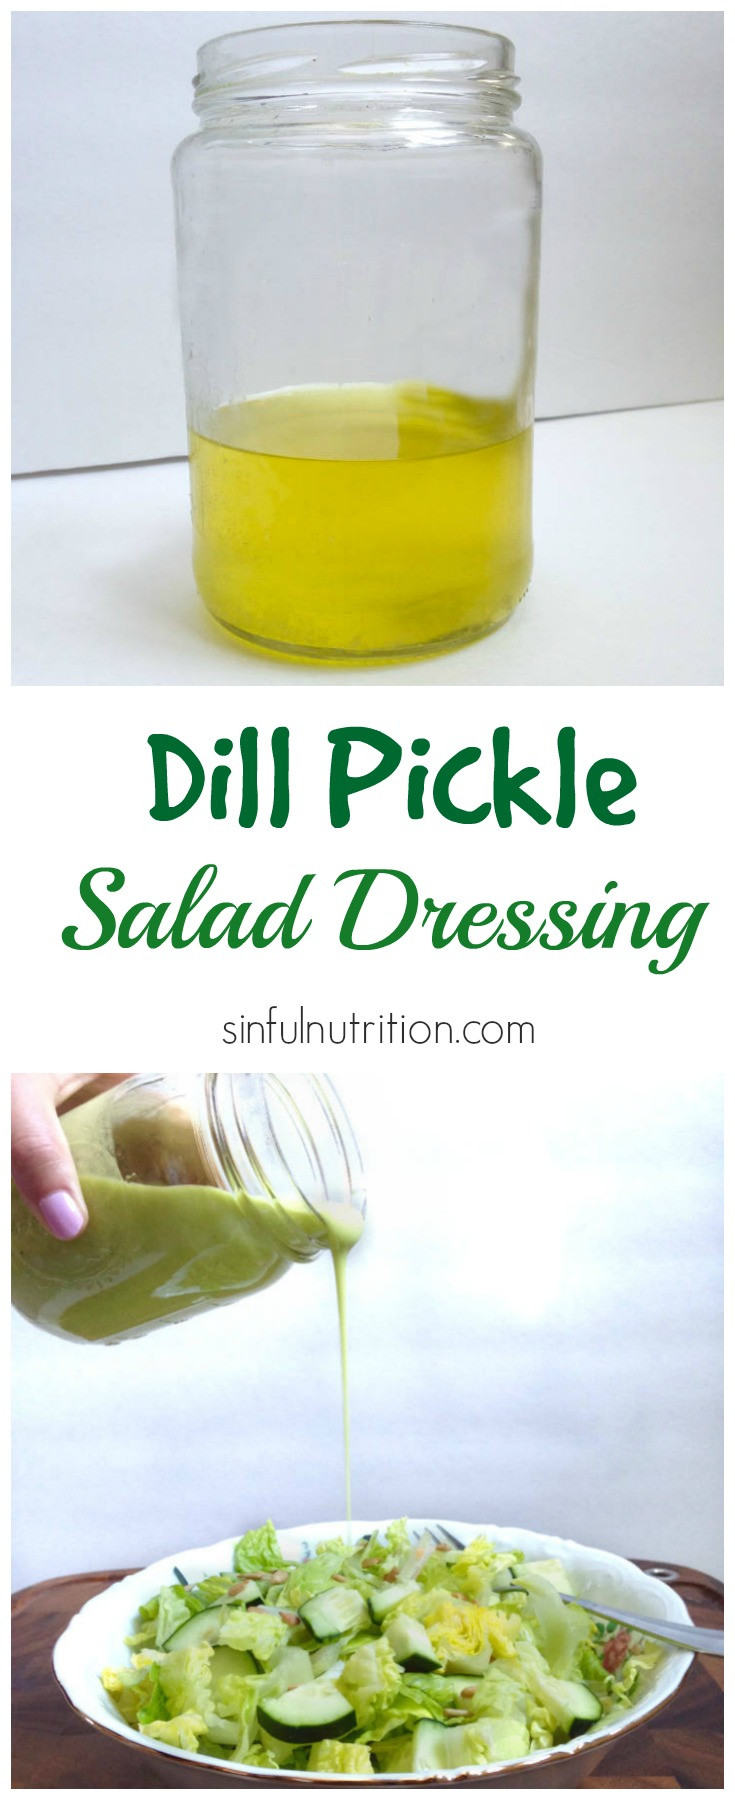 Are Dill Pickles Healthy  Creamy Dill Pickle Dressing Sinful Nutrition